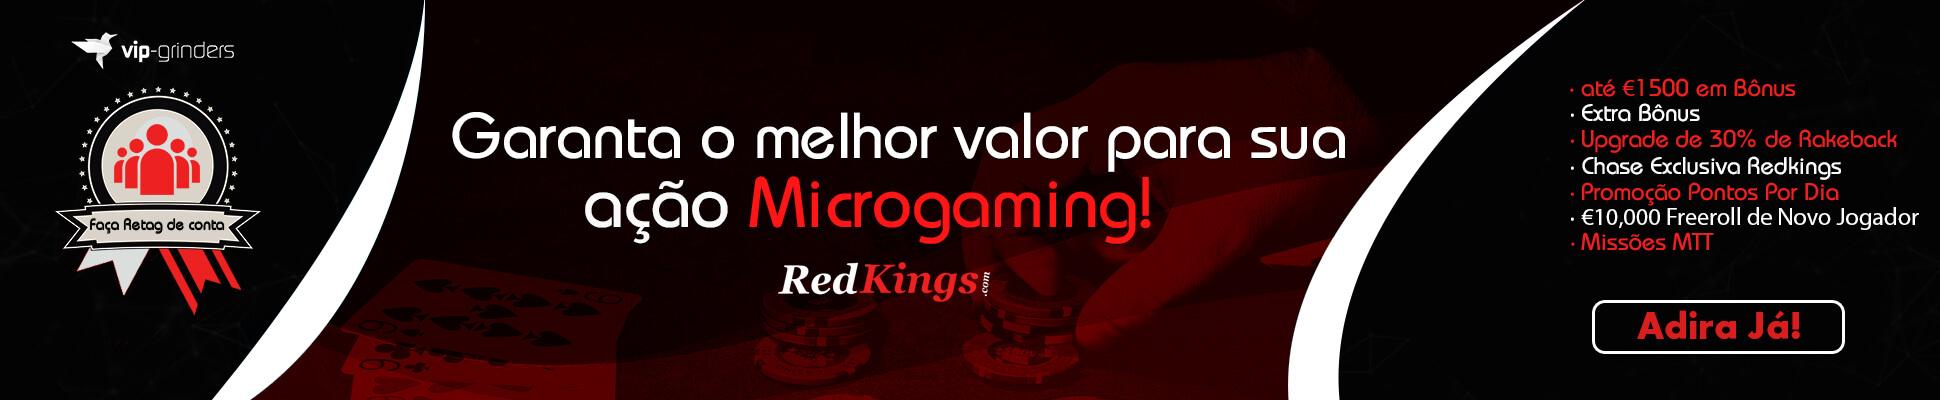 redkings-br-banner